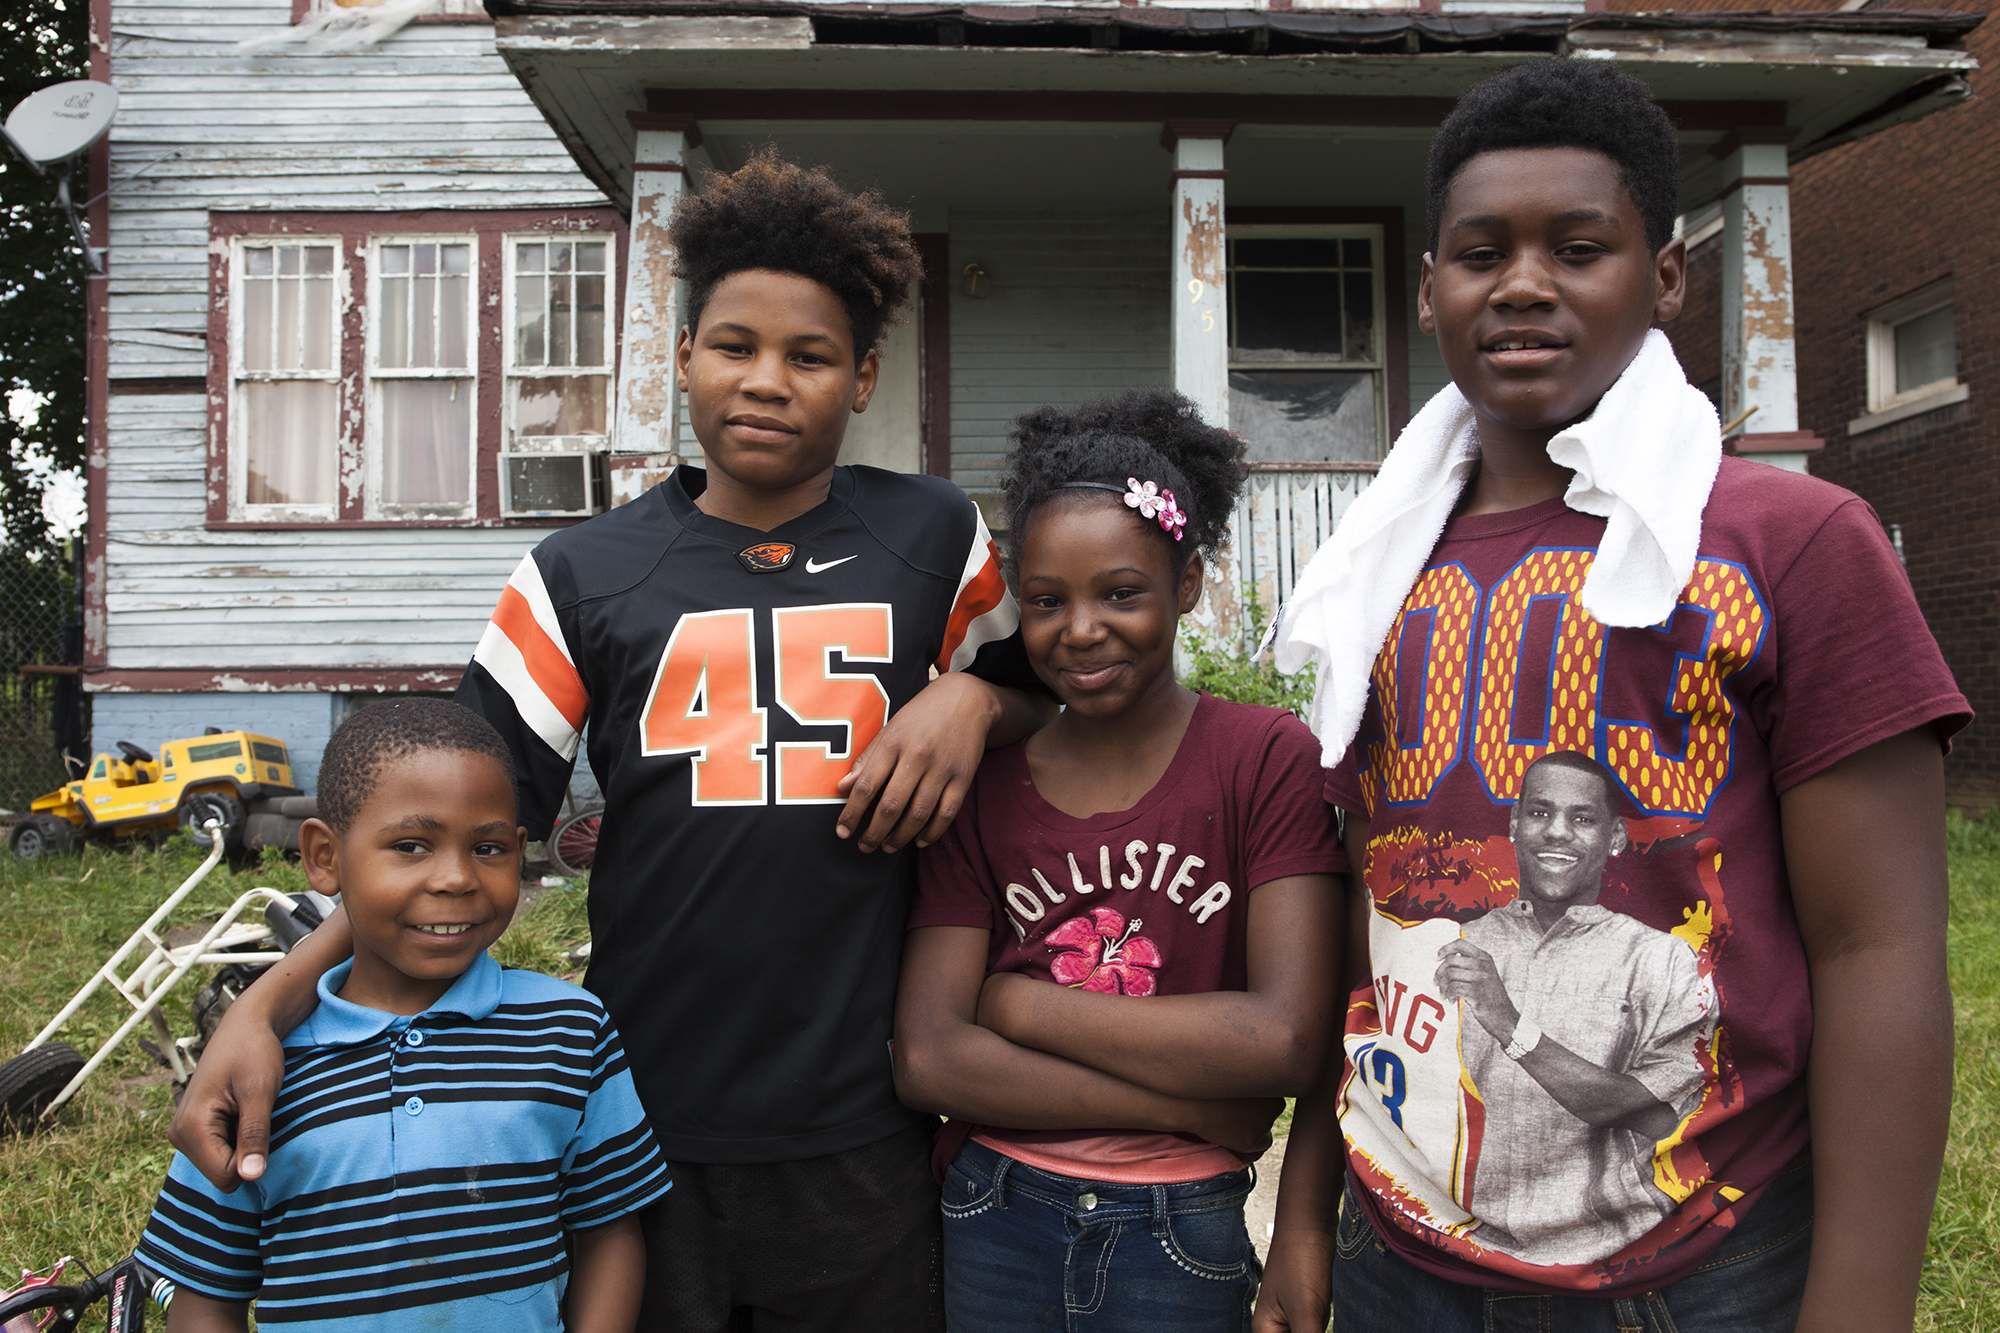 Lashanda Mayberry's children attended a Highland Park, Michigan, charter school, one of the few schools left in the suburb. Mayberry's children, pictured from right, are Tazeon, 15, Myaira, 11, and Keon, 13. Also pictured is Mayberry's nephew, Armani, 7. (Jeffrey Pierre/News21)